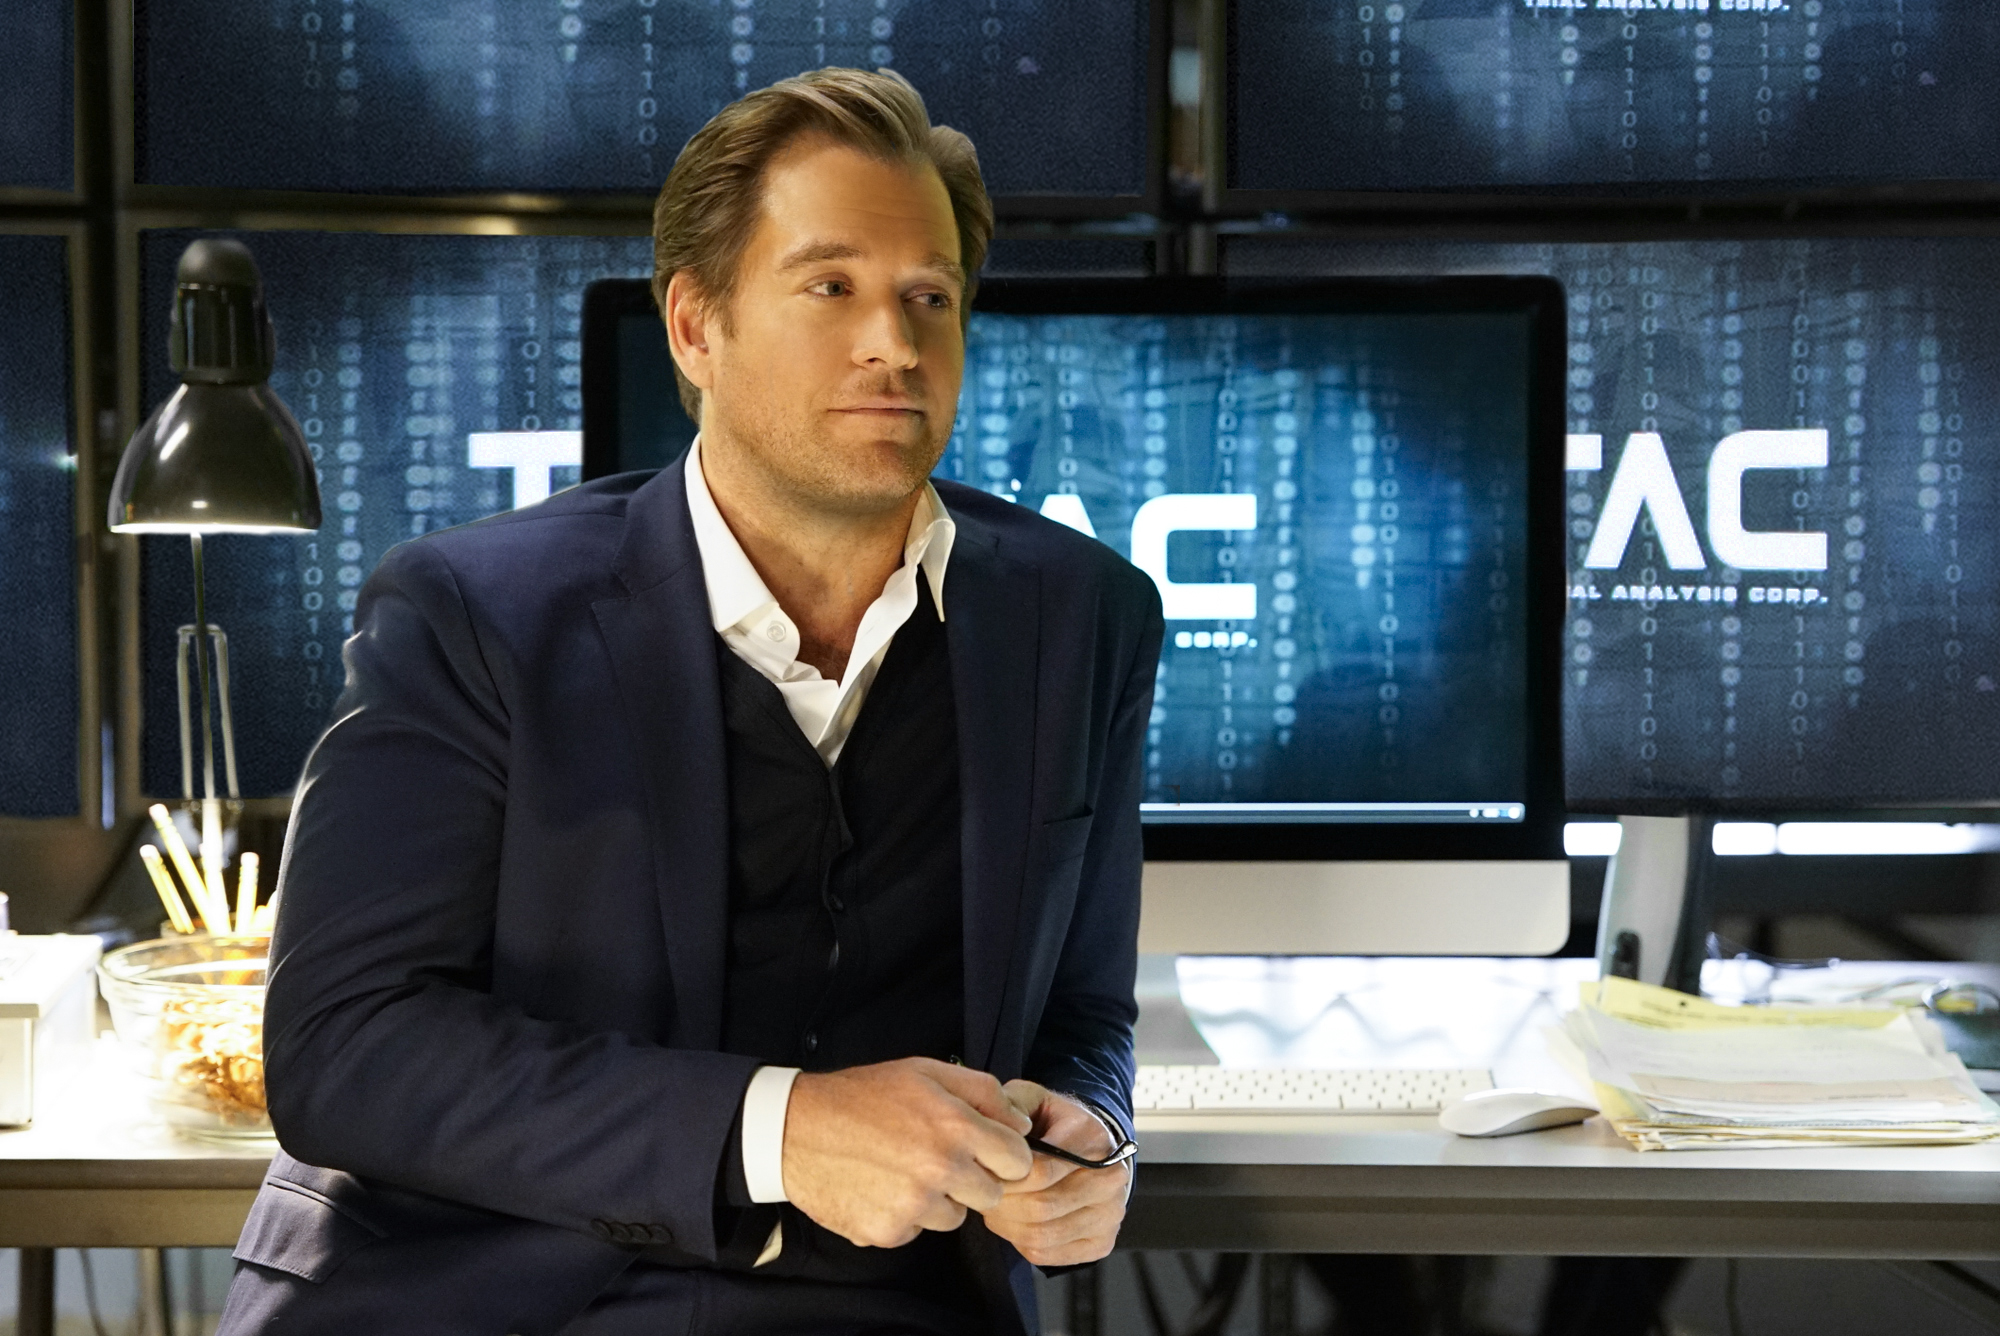 New Drama, BULL is superficial - Alvinology